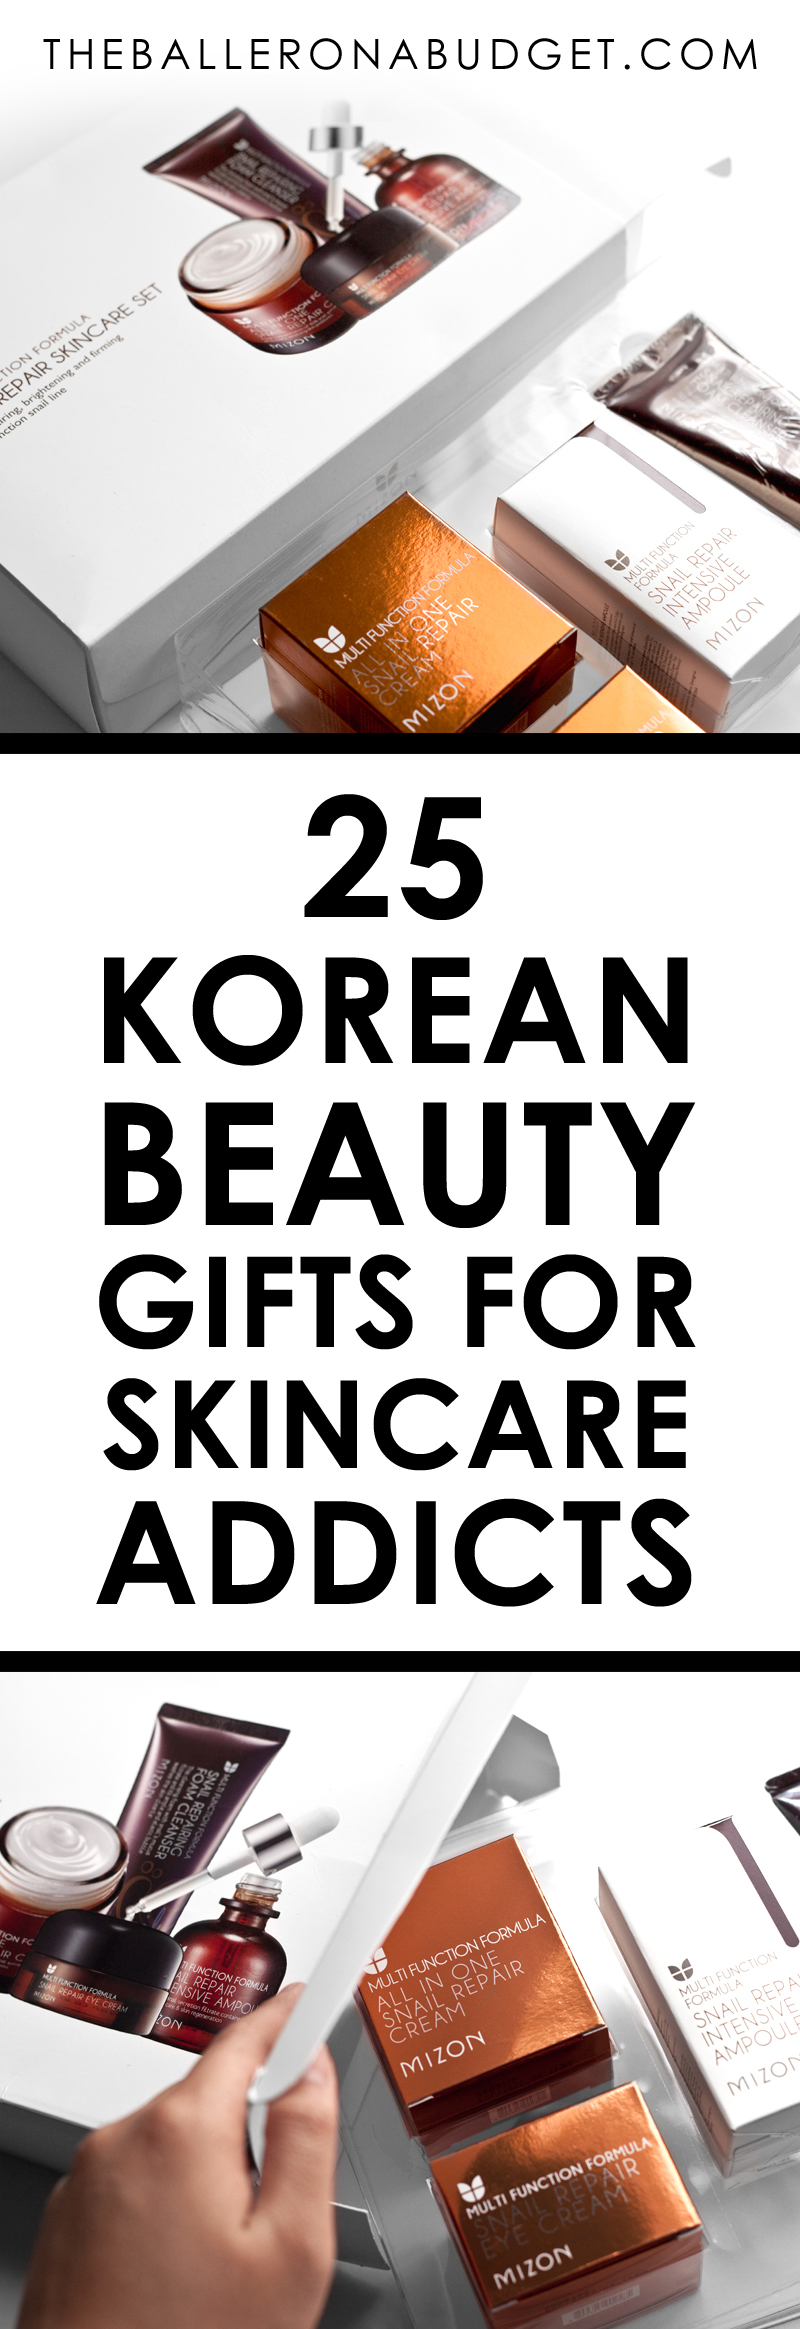 Looking for a Korean skincare gift for the Korean beauty addict you know? Here are over 25 gift sets from travel-sized to full-sized that fit every budget. - www.theballeronabudget.com